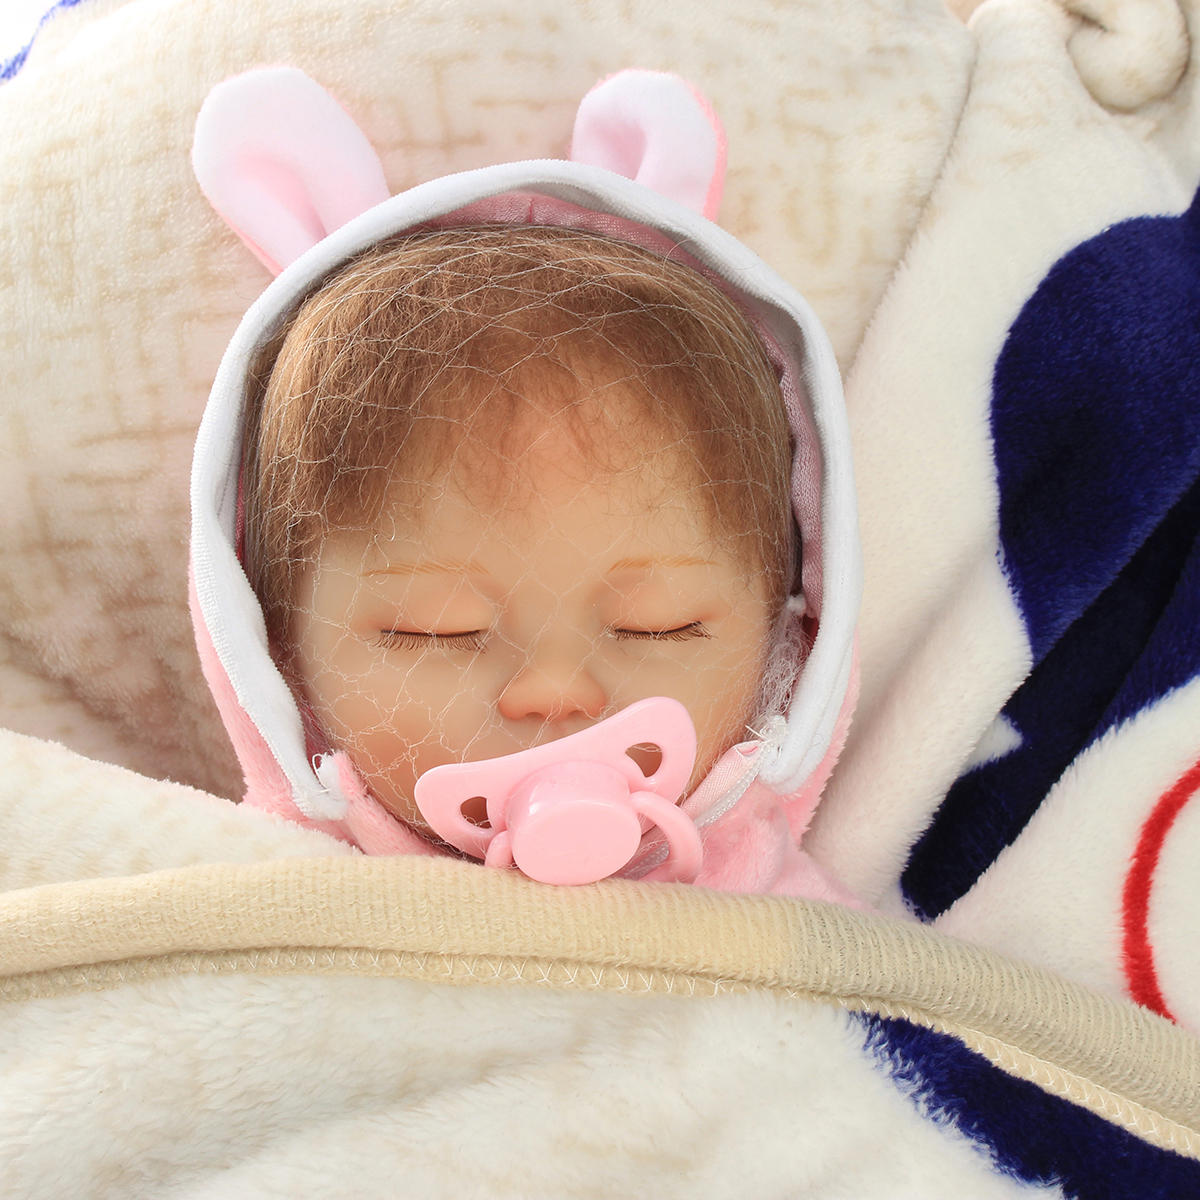 16 Inch Reborn Baby Doll Soft Body Silicone Girl Lifelike BeBe Reborn Handmade Kits Birthday Toy